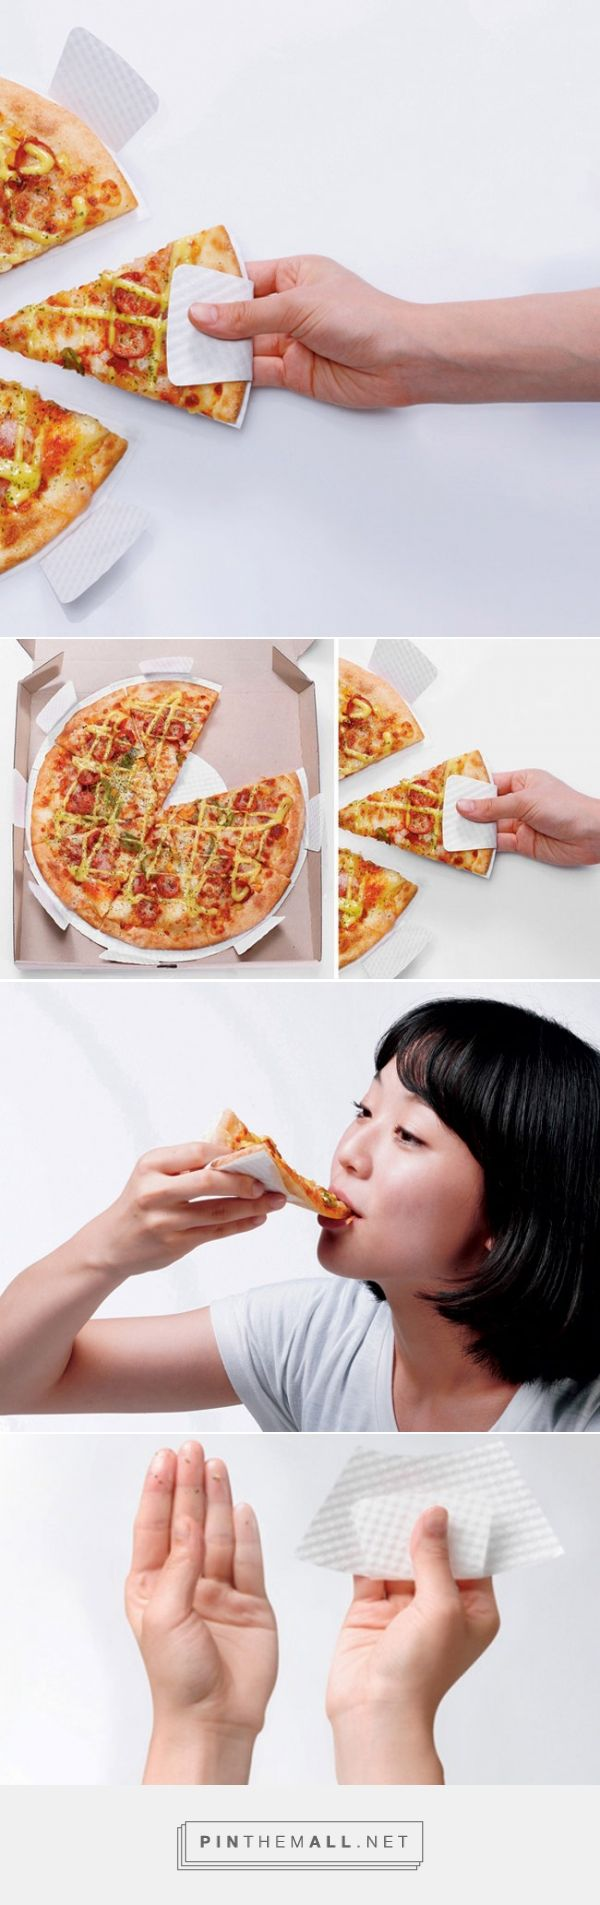 Paper Dish - Mess Free Pizza (Concept)